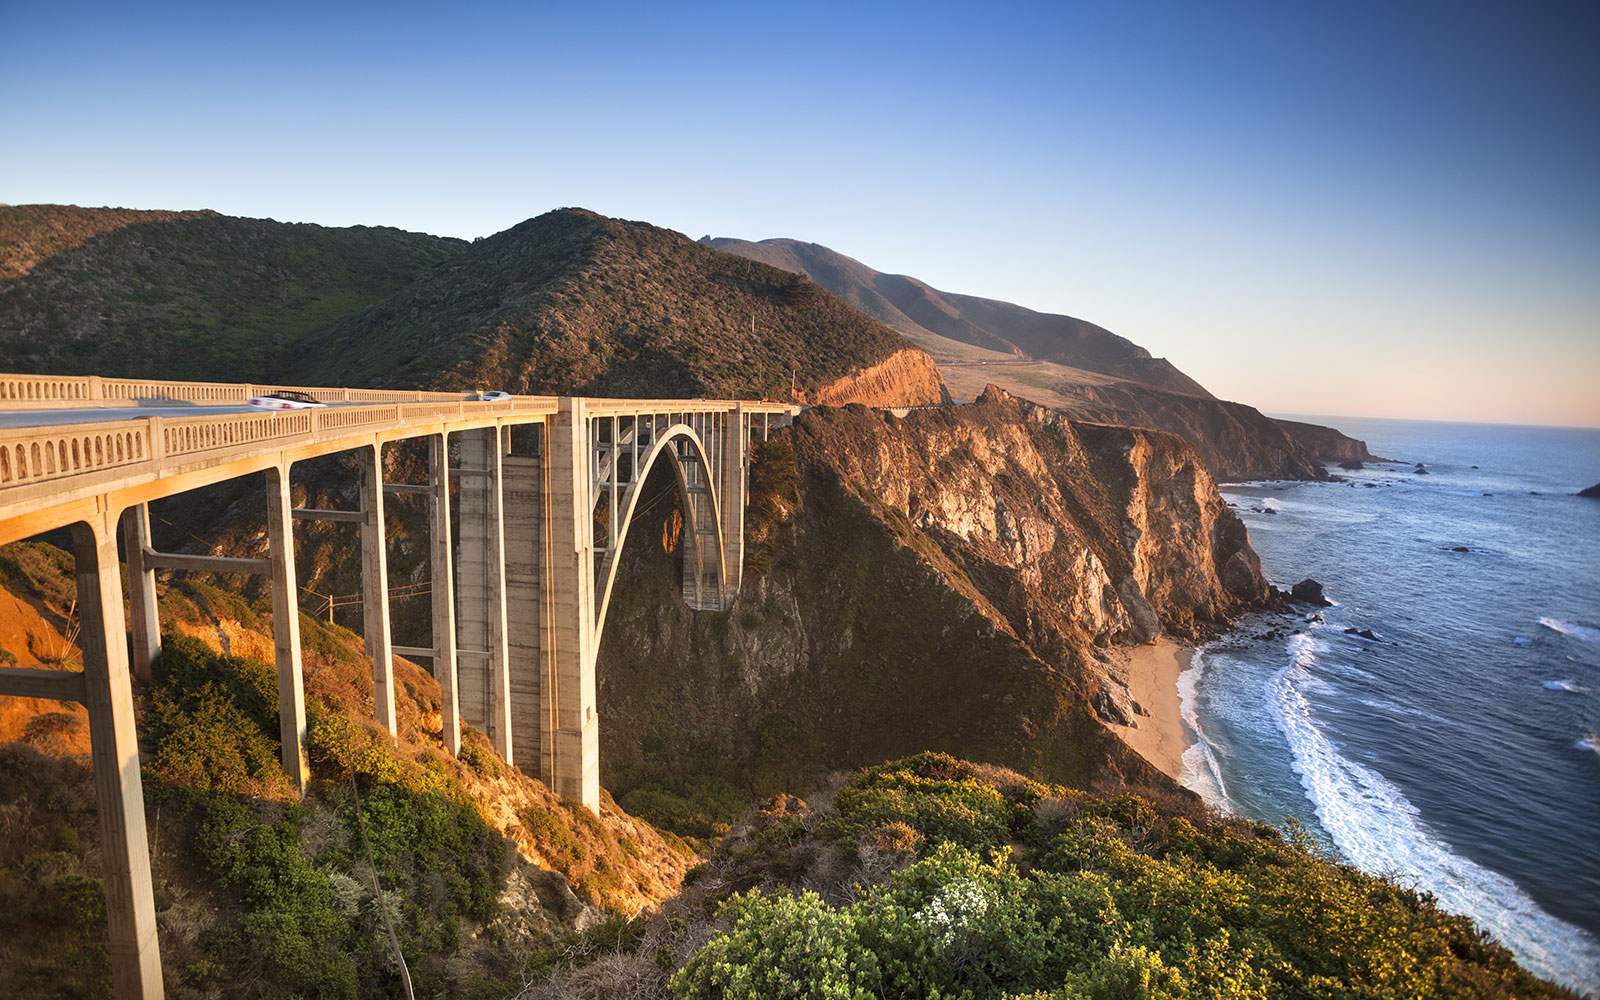 Noon: Stop for Photos at Bixby Bridge in Big Sur